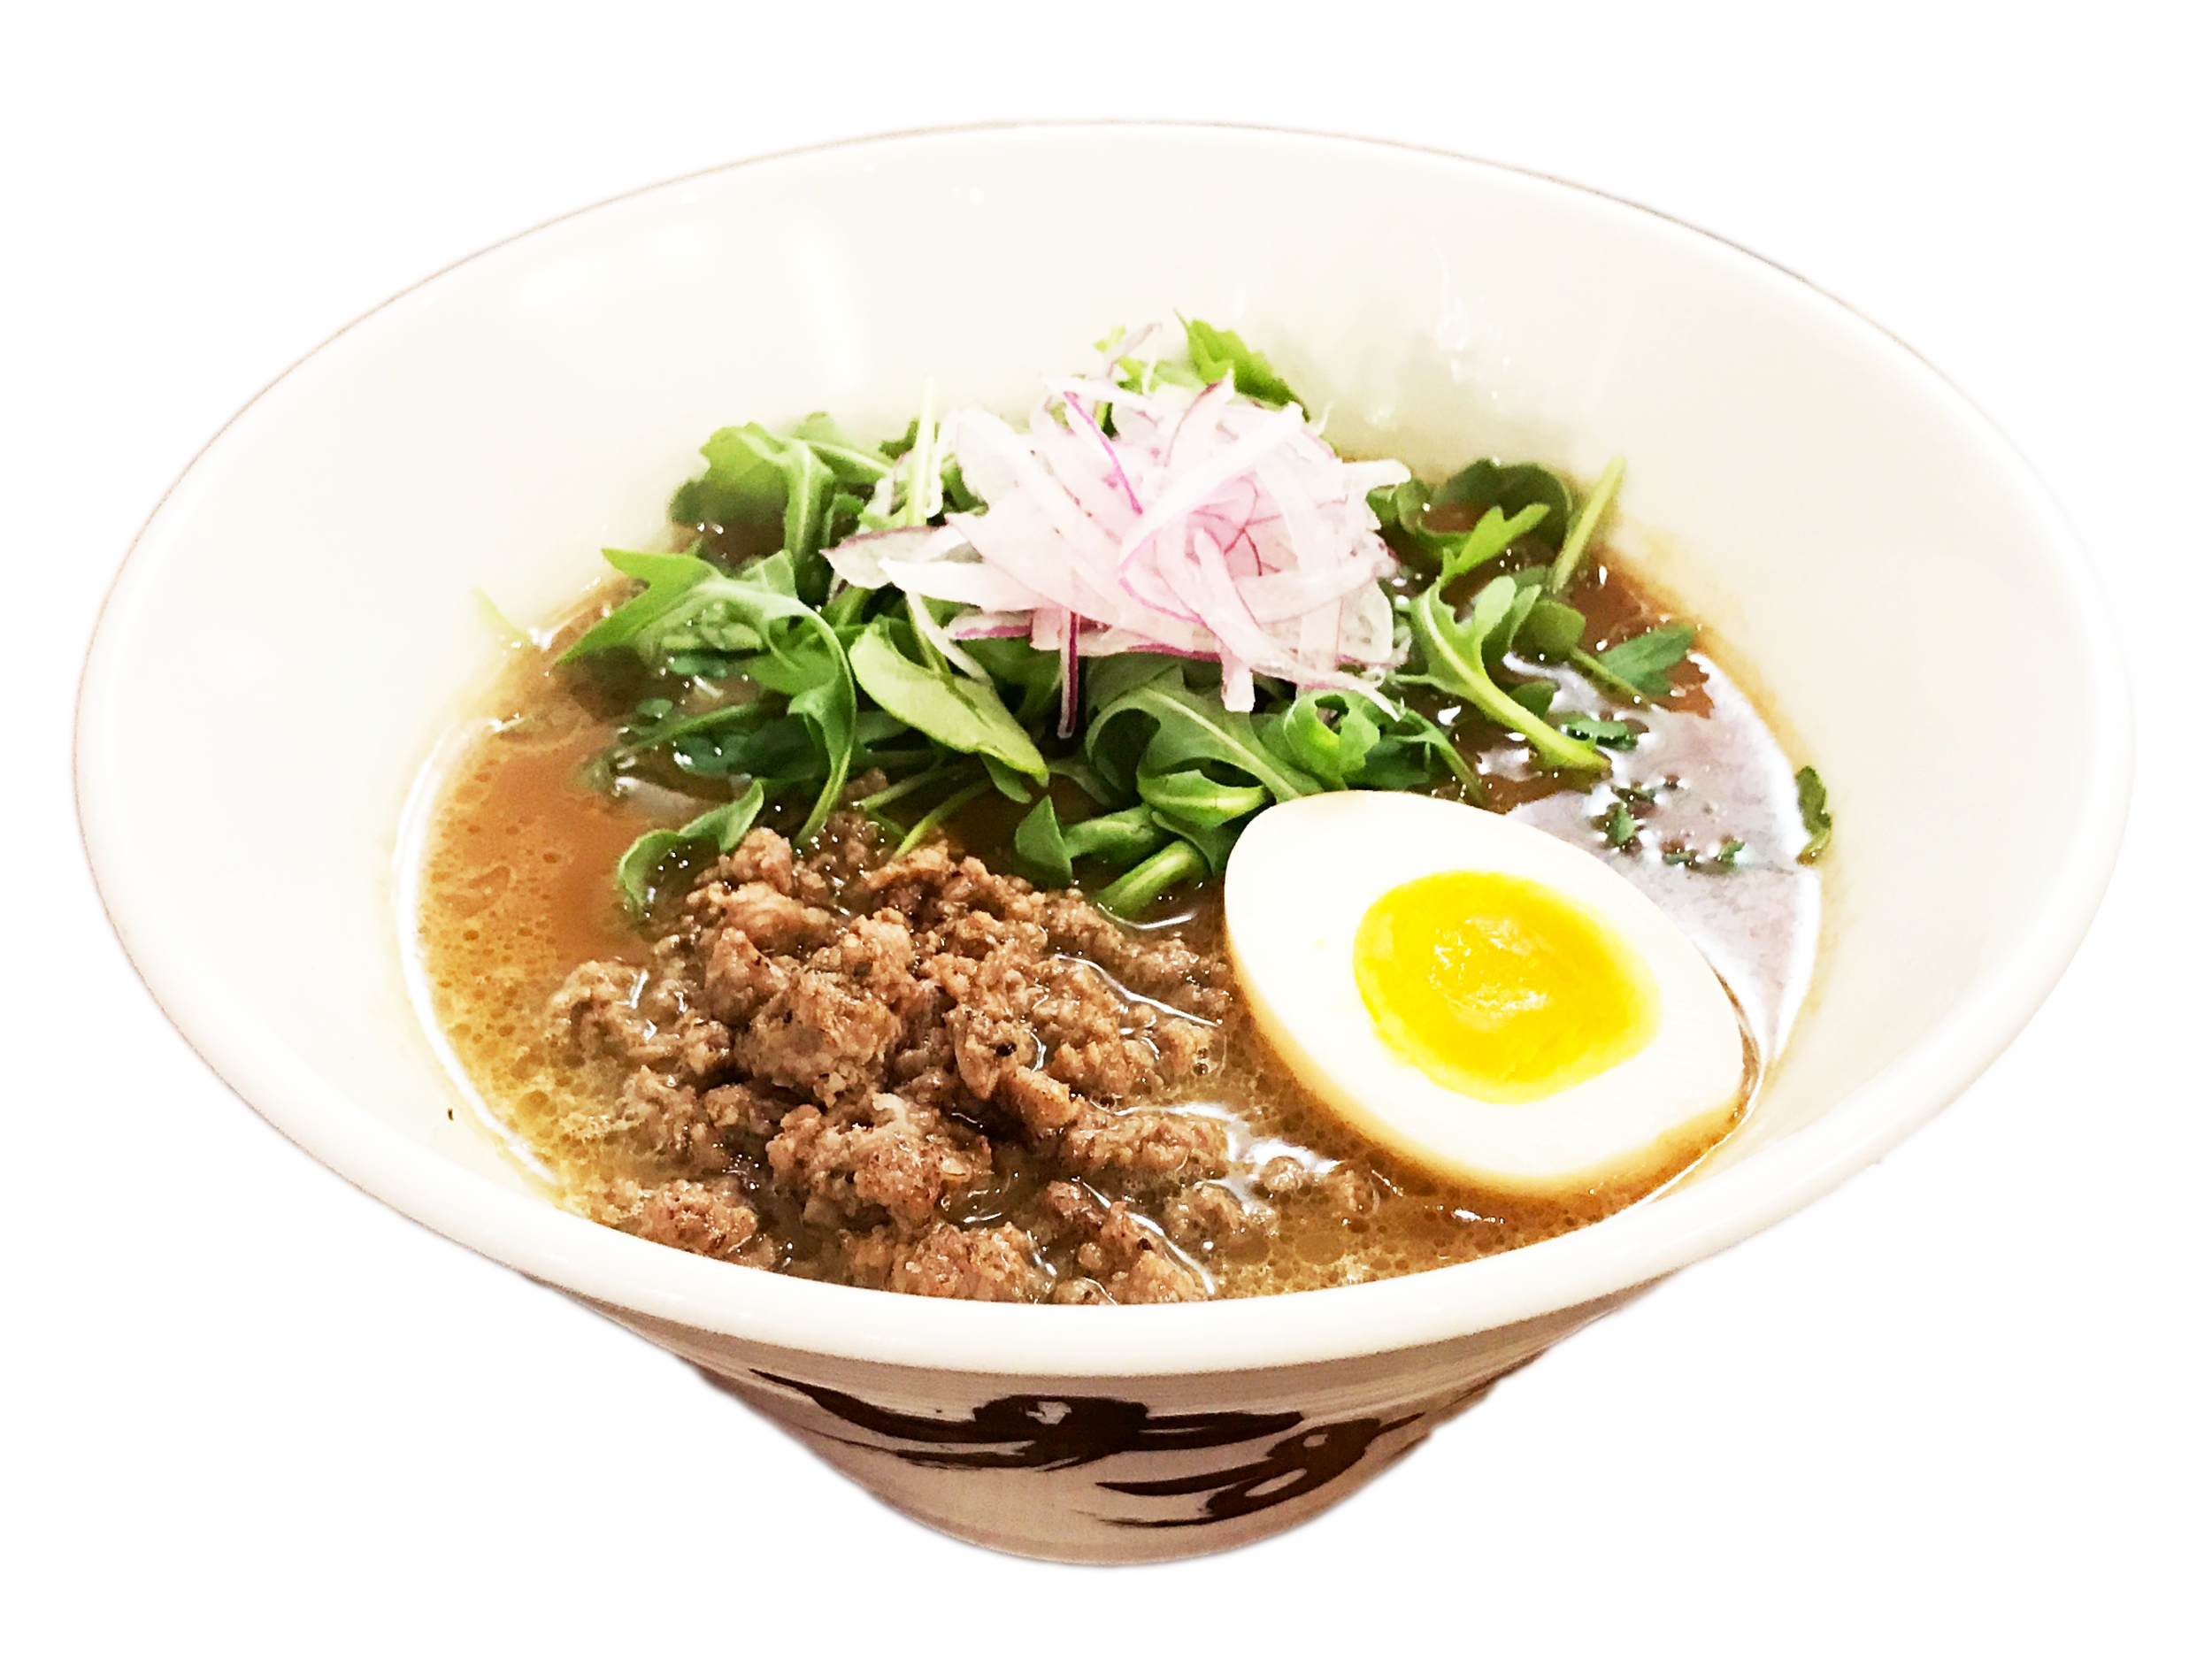 Gyukotsu $15.95 //**Daily limit of 50 bowls  No MSG. Non-GMO. No Preservatives. No Artificial coloring. No Antibiotics.   Grass-fed Beef Bone Broth Noodles: Yuzu   Original Homemade Black Pepper Noodles Topped with: grass-fed ground beef, red onions, arugula, soy marinated soft boiled egg.   Contains: egg, soy sauce / noodles contain: wheat SPICY +$1